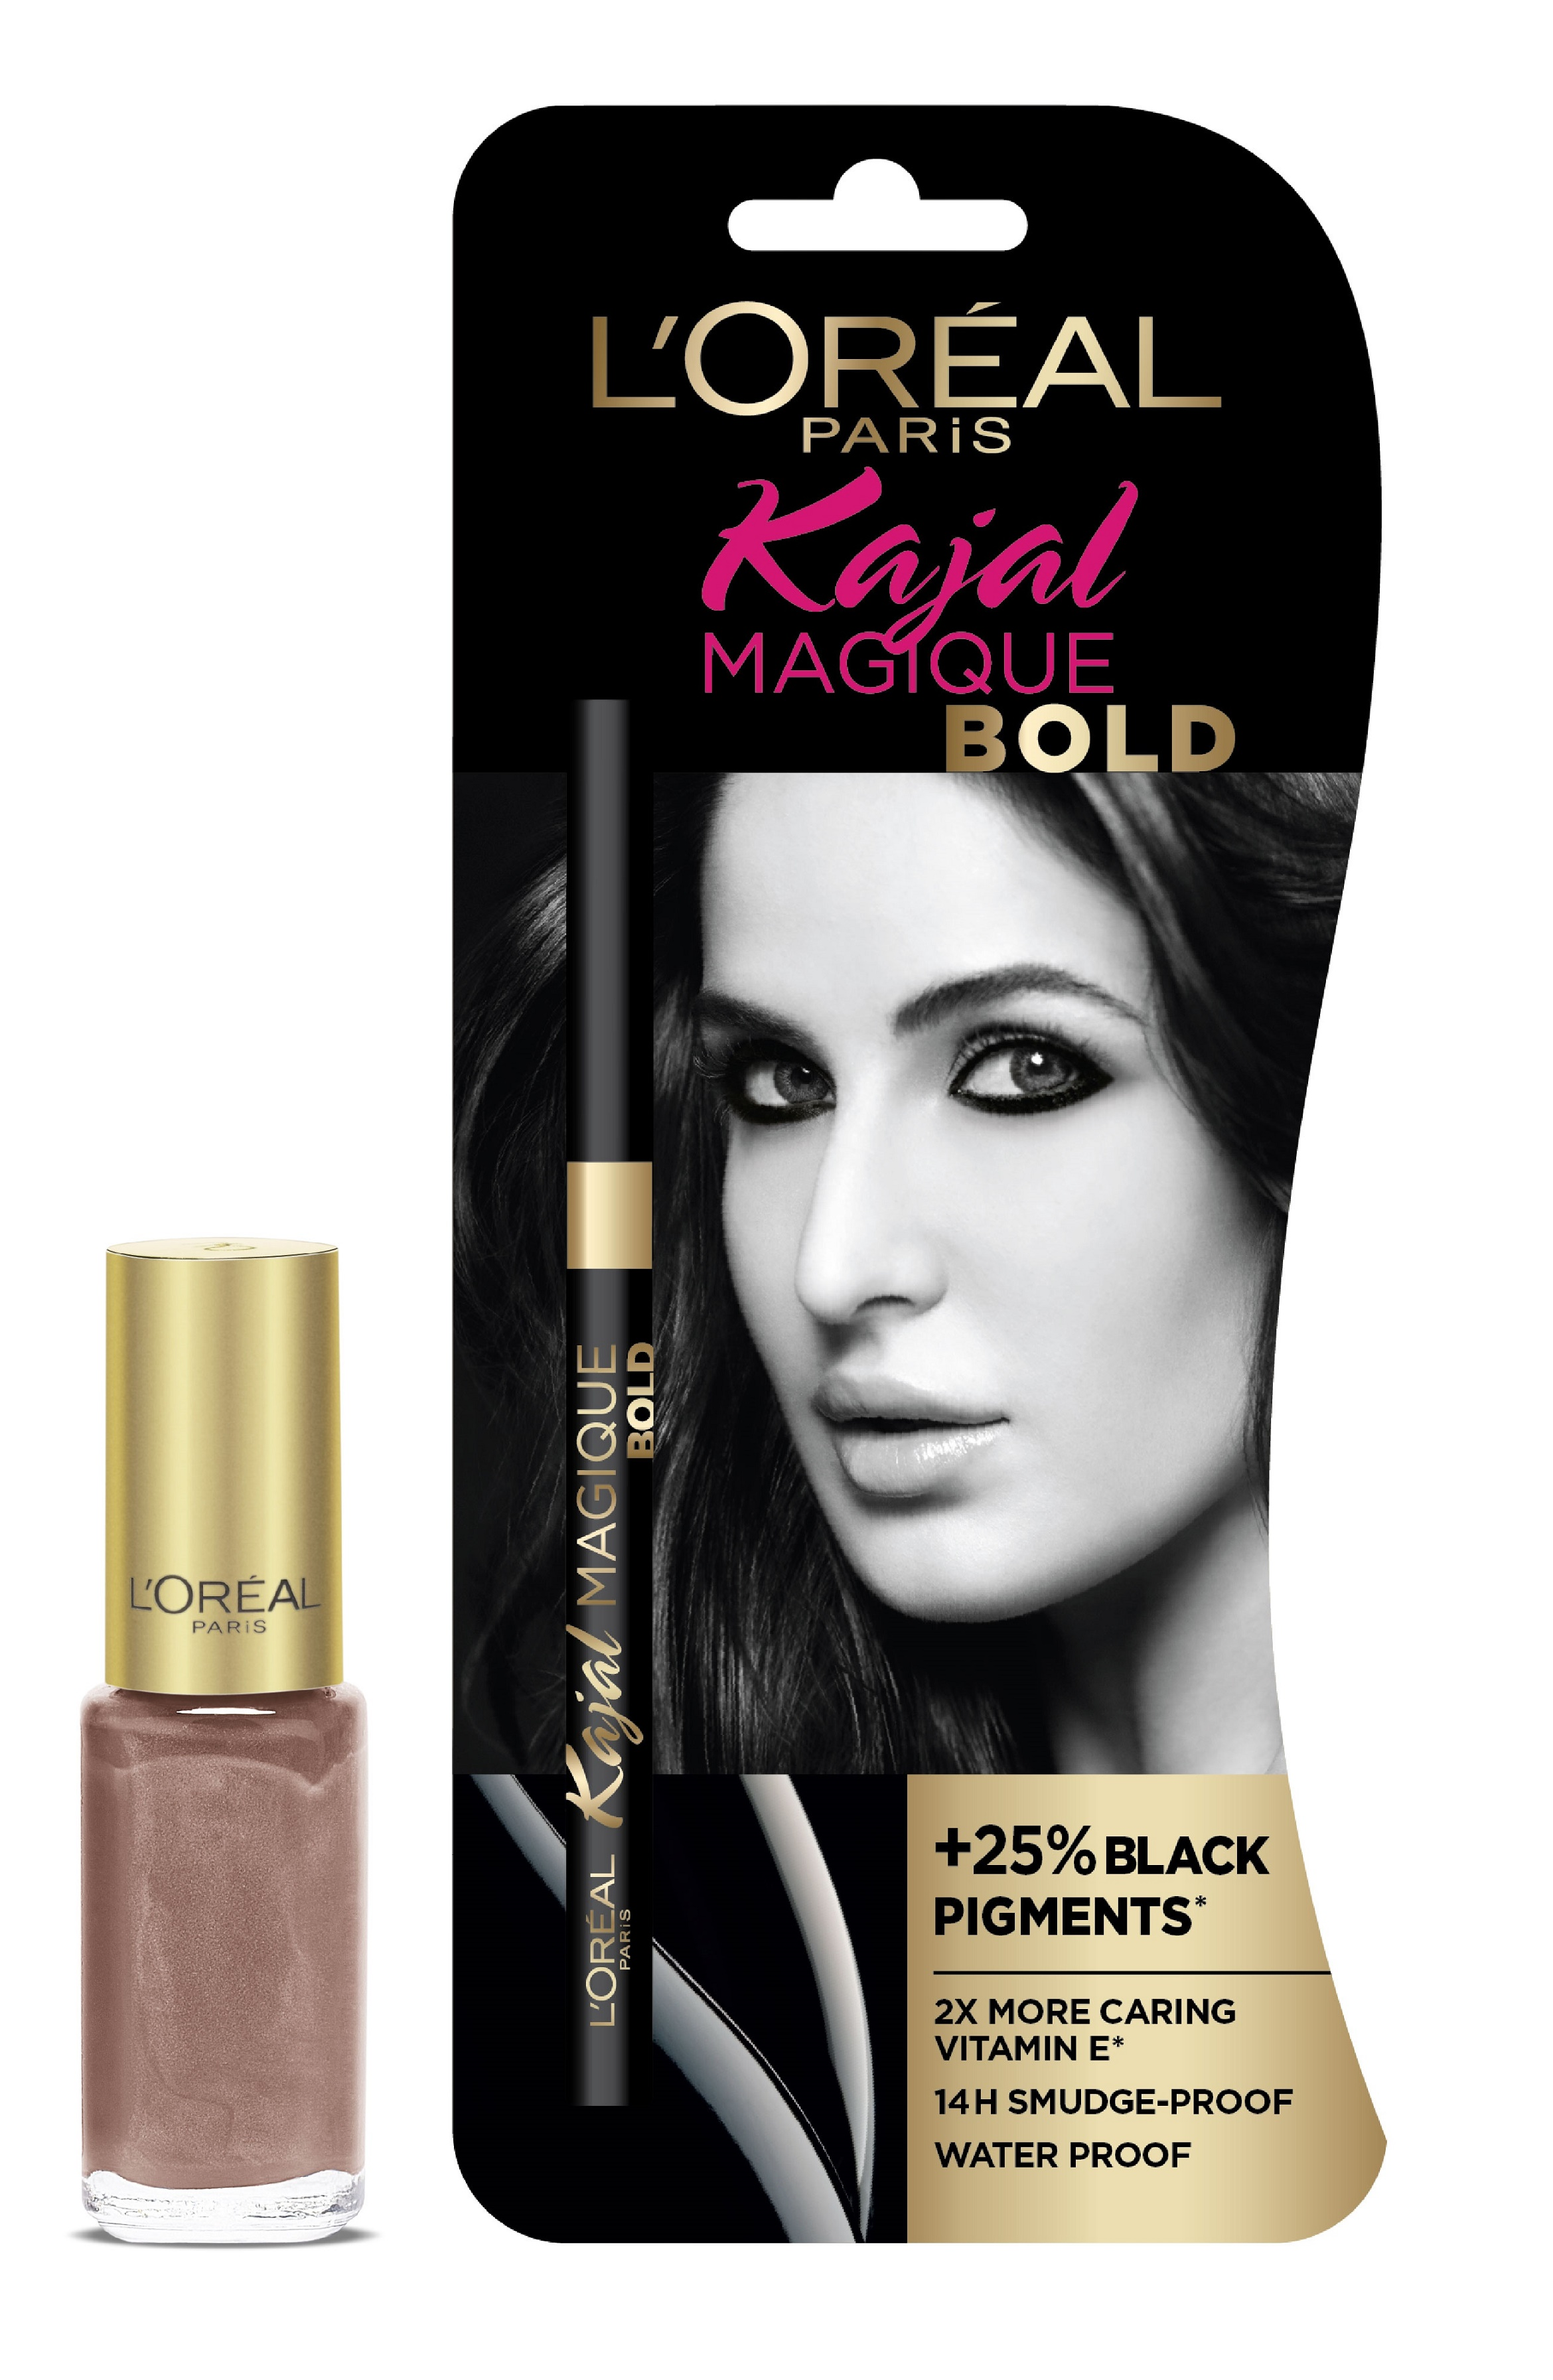 L'Oreal Paris Kajal Magique Bold + Color Riche Vernis Versailes Gold  available at Nykaa for Rs.500